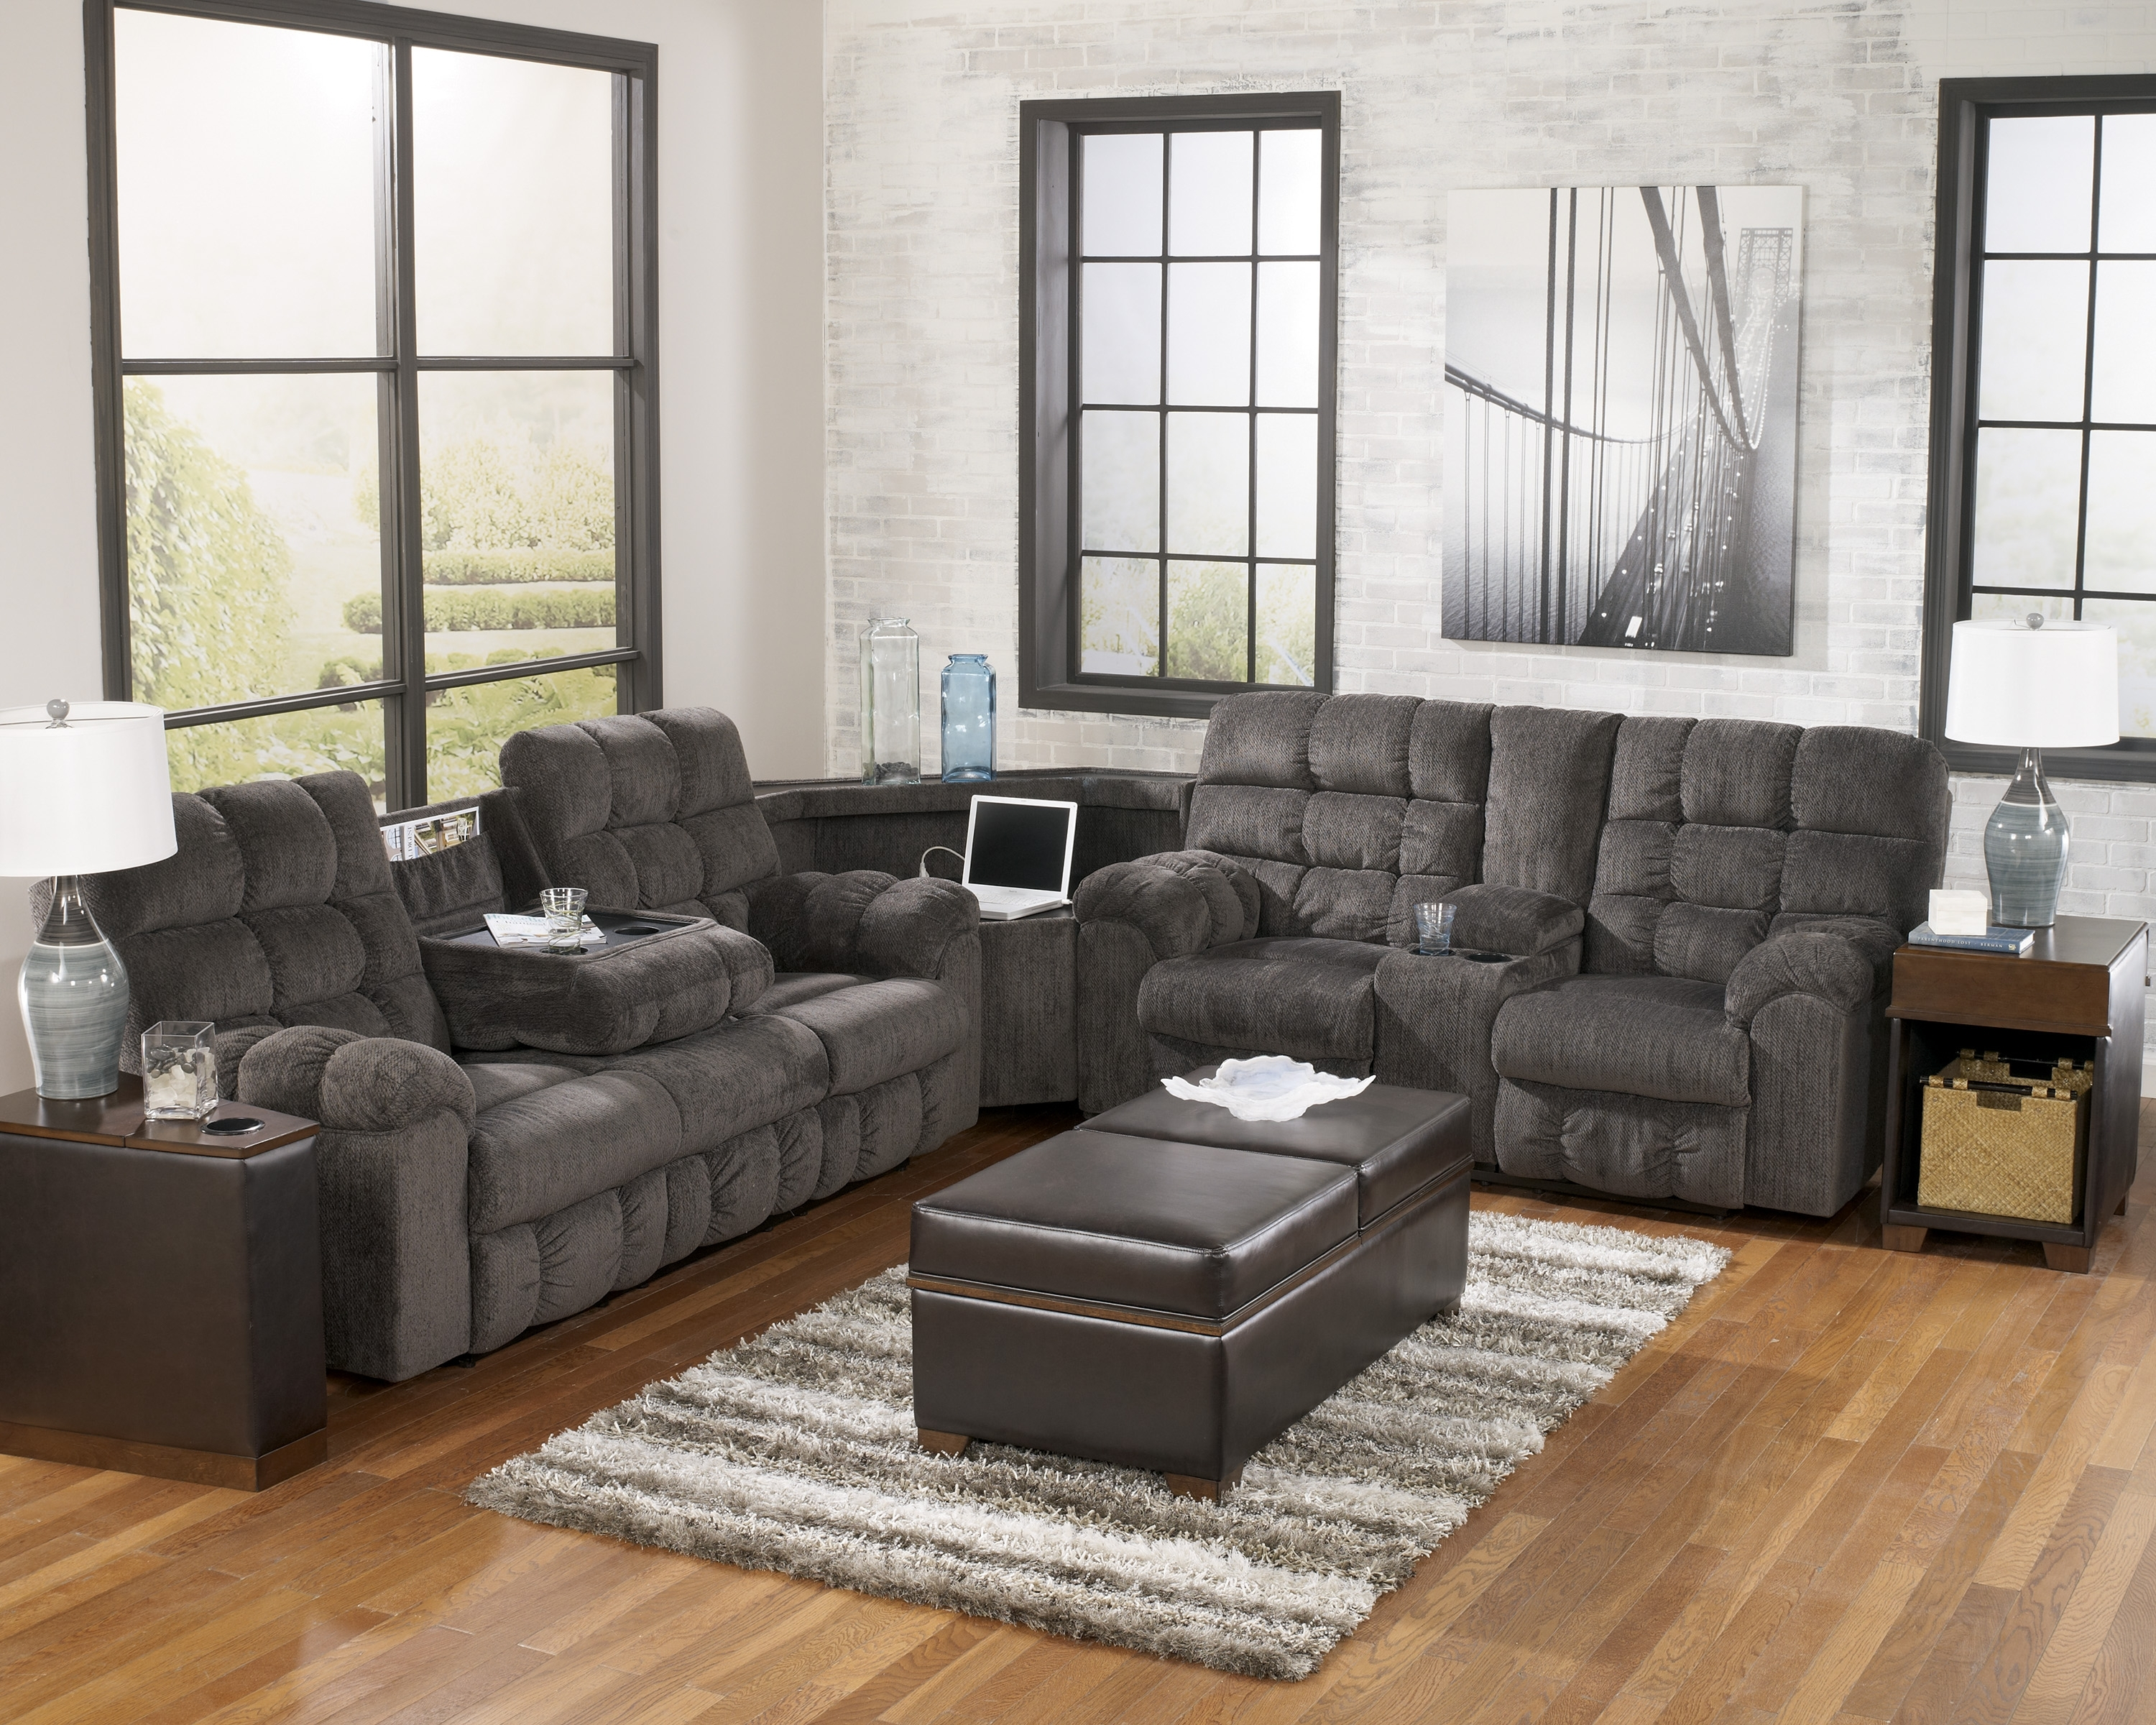 Amazing Ashley Sofas And Sectionals 67 With Additional Used for Sears Sectional Sofas (Image 1 of 10)